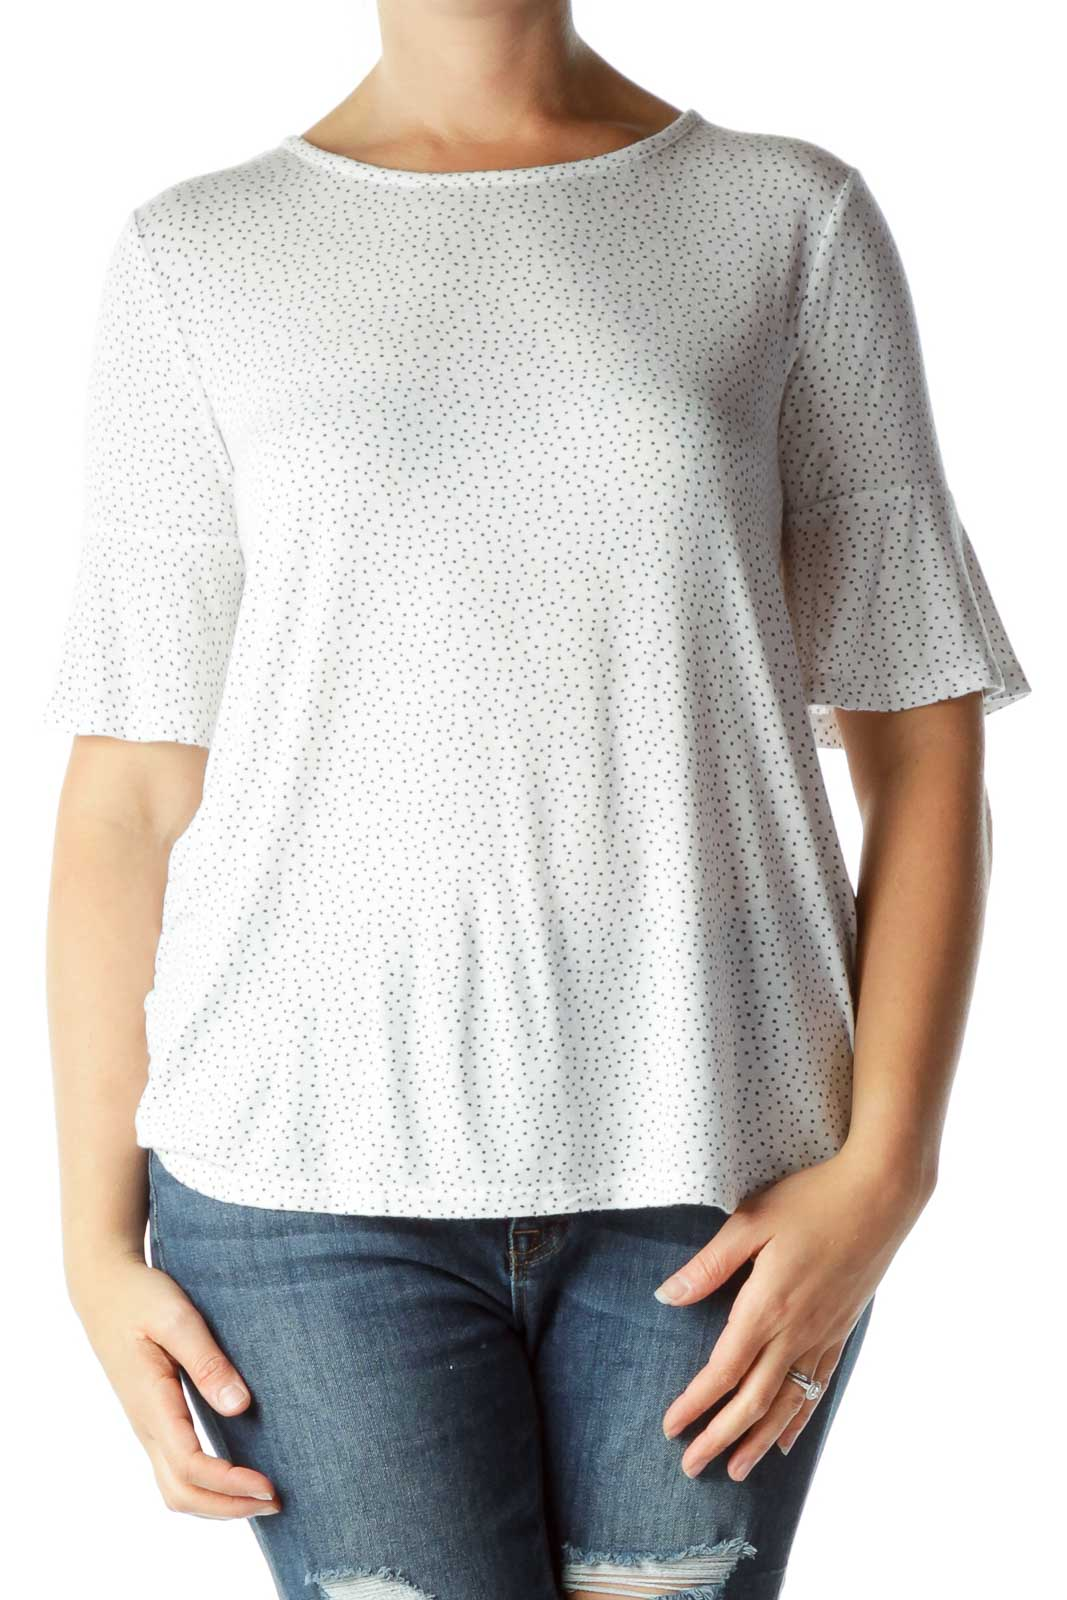 White Polka Dot Mid-Sleeve Top